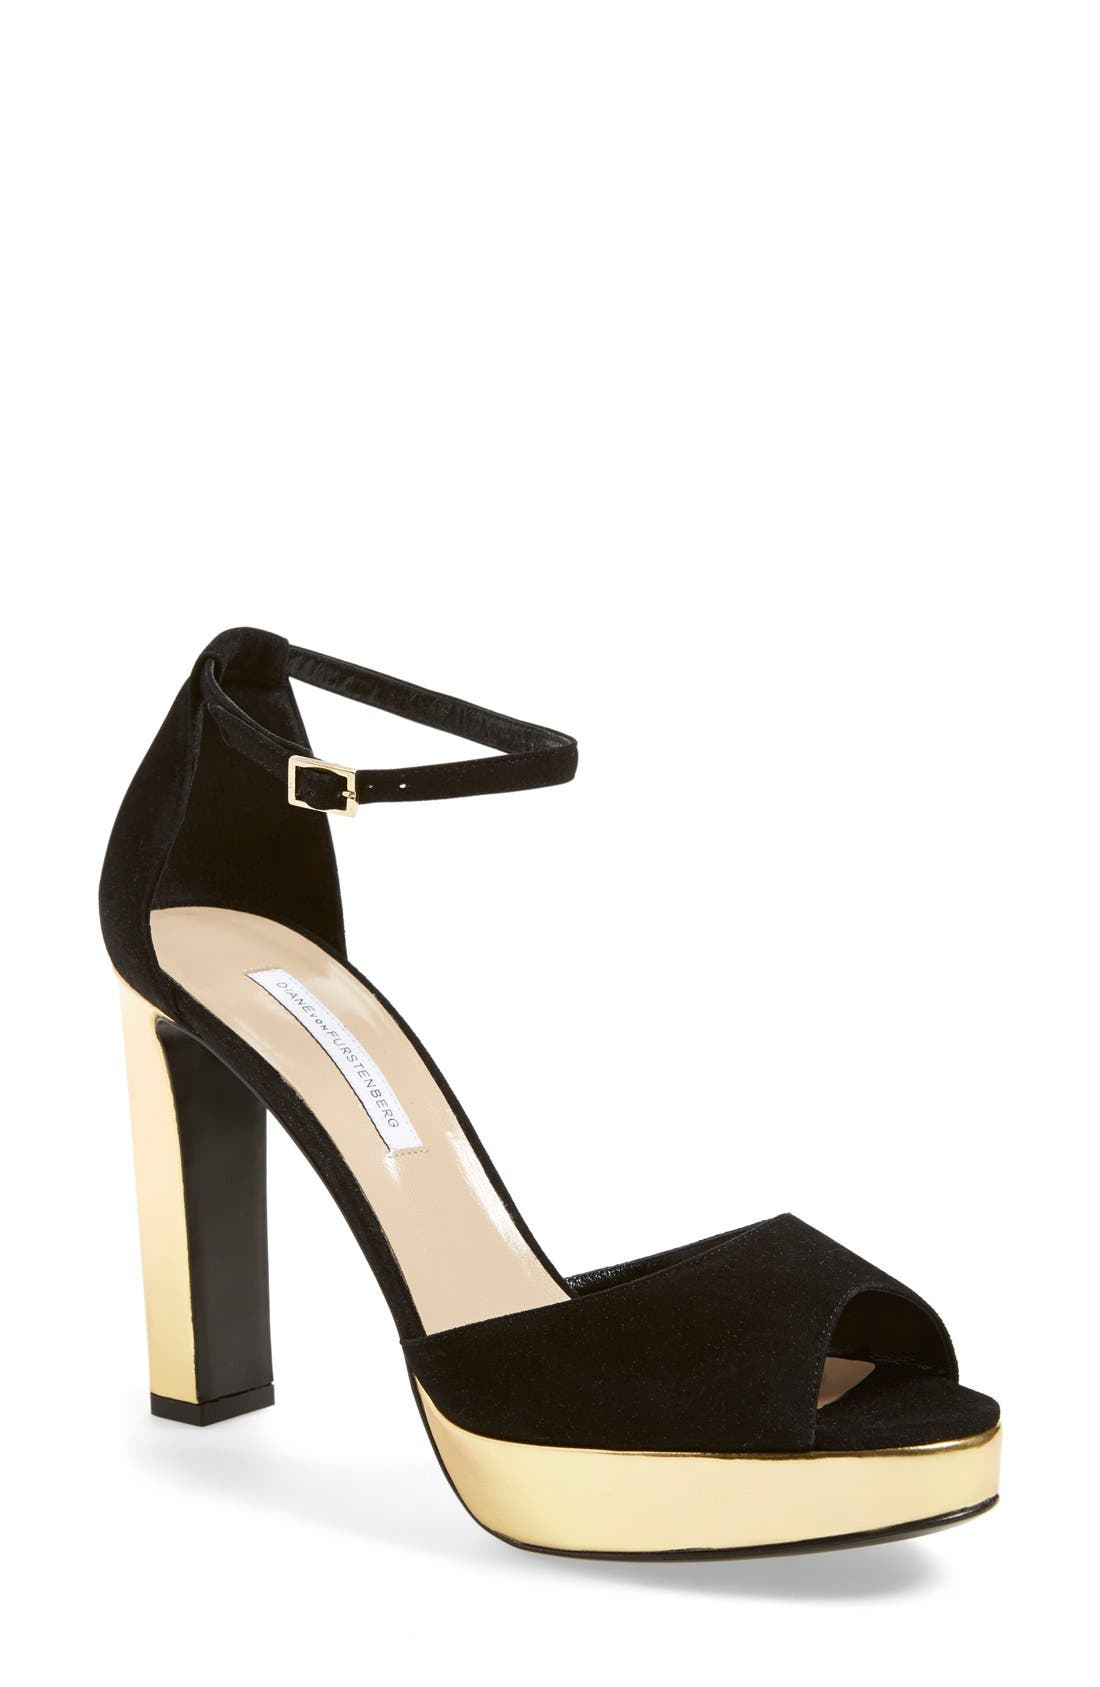 Alternate Image 1 Selected - Diane von Furstenberg 'Daria' Platform Peep Toe Sandal (Women)